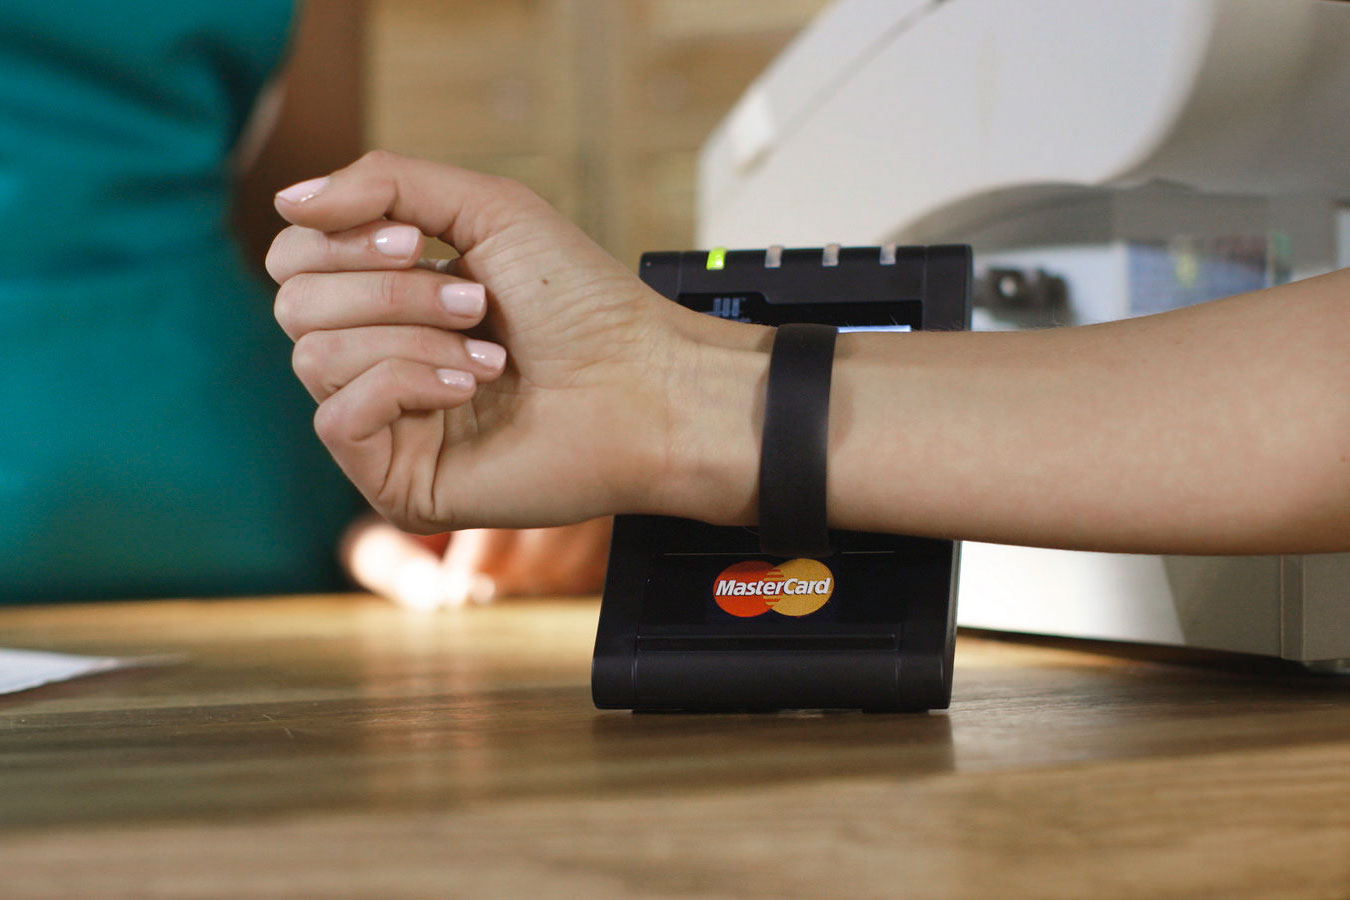 Wearable Payments: The Future of Commerce